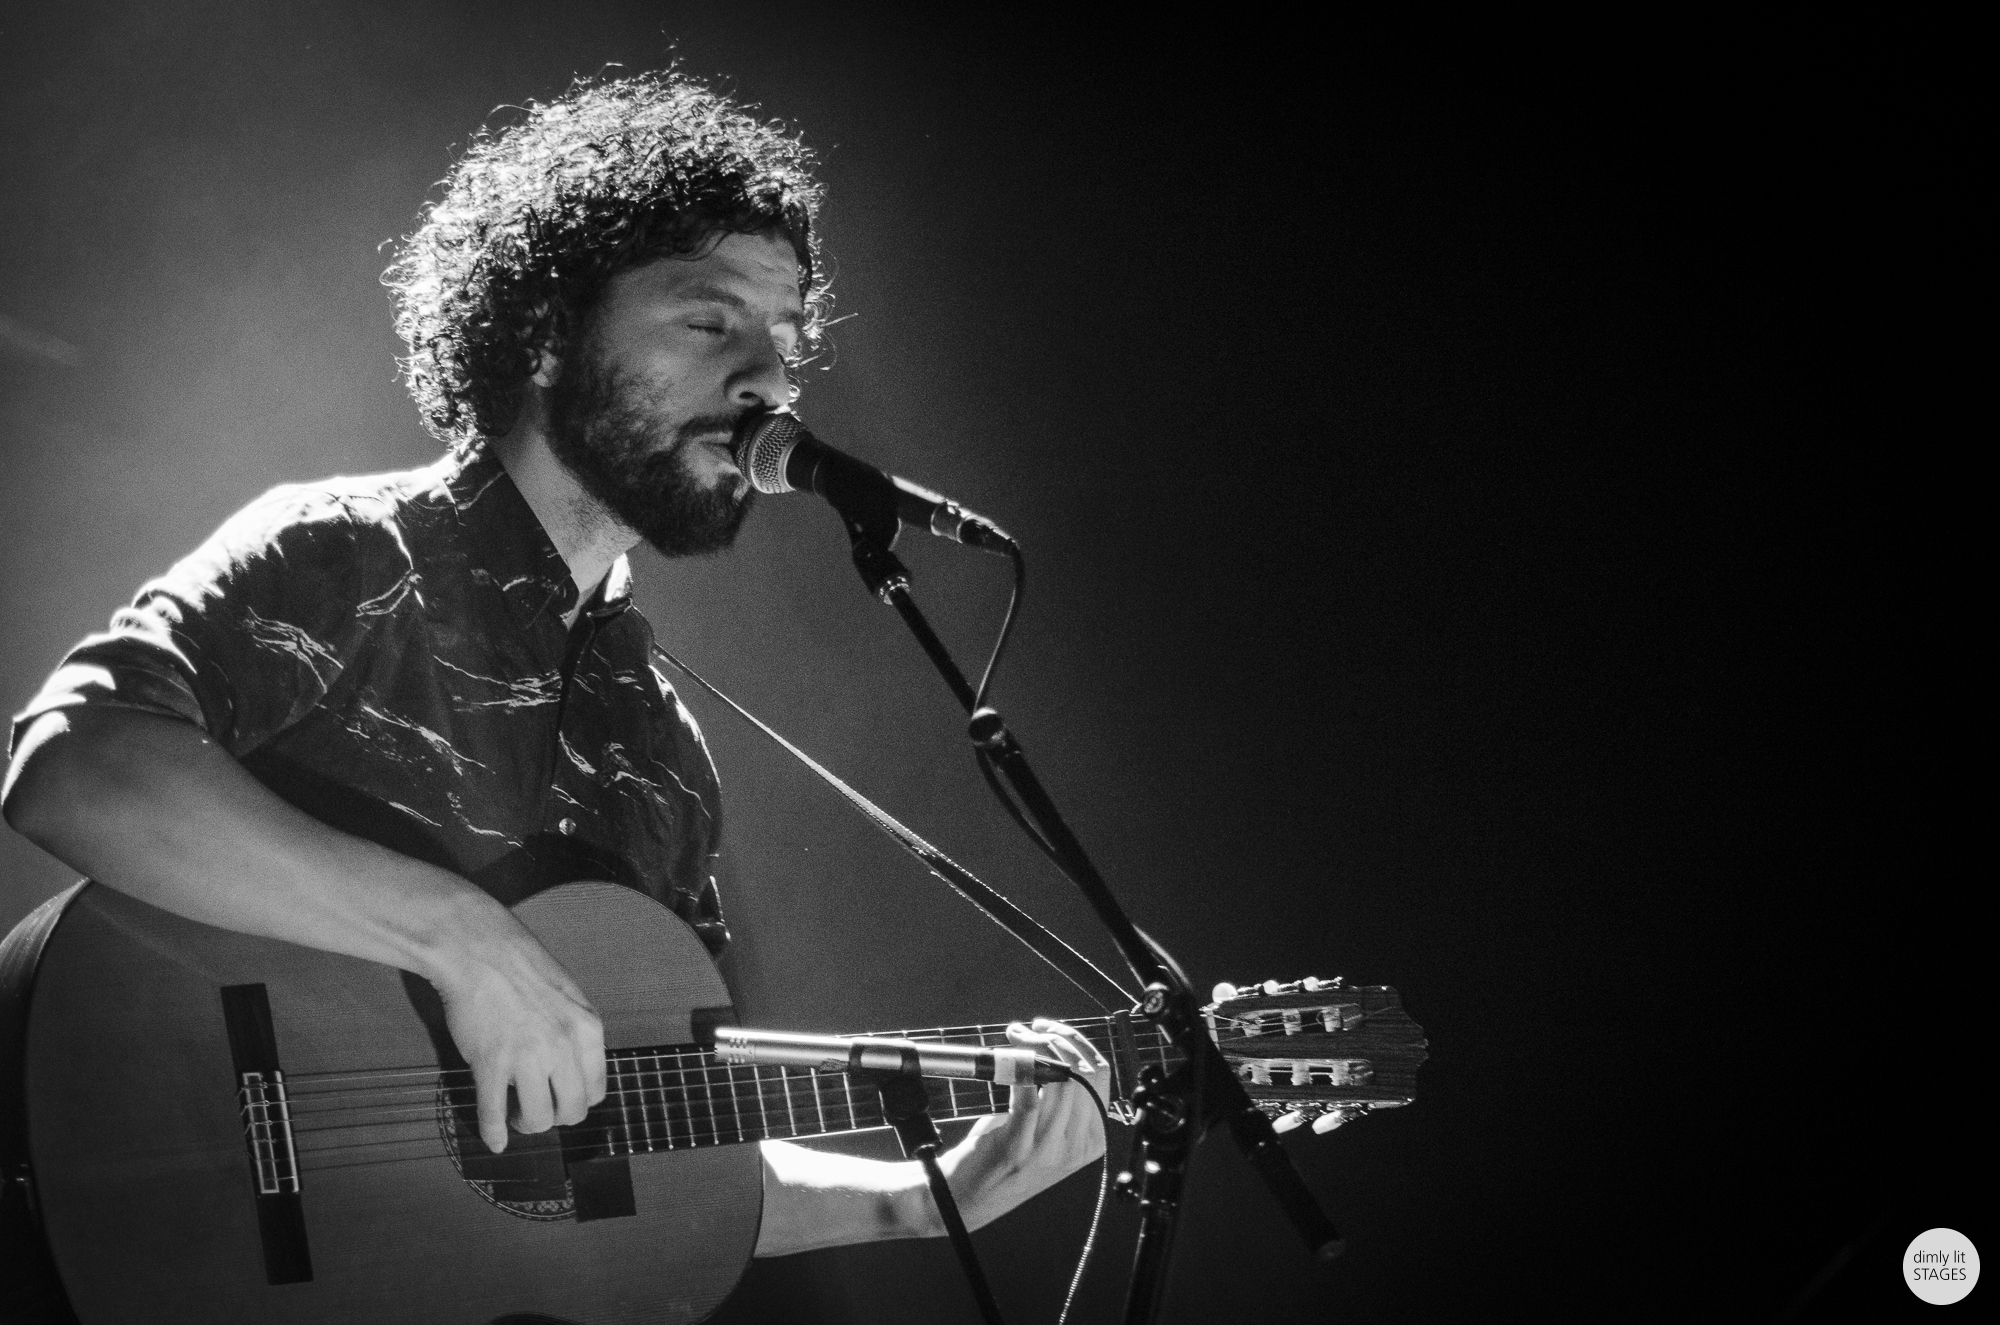 Shakey Graves & Jose Gonzalez and The Brite Lites at Red Rocks Amphitheater